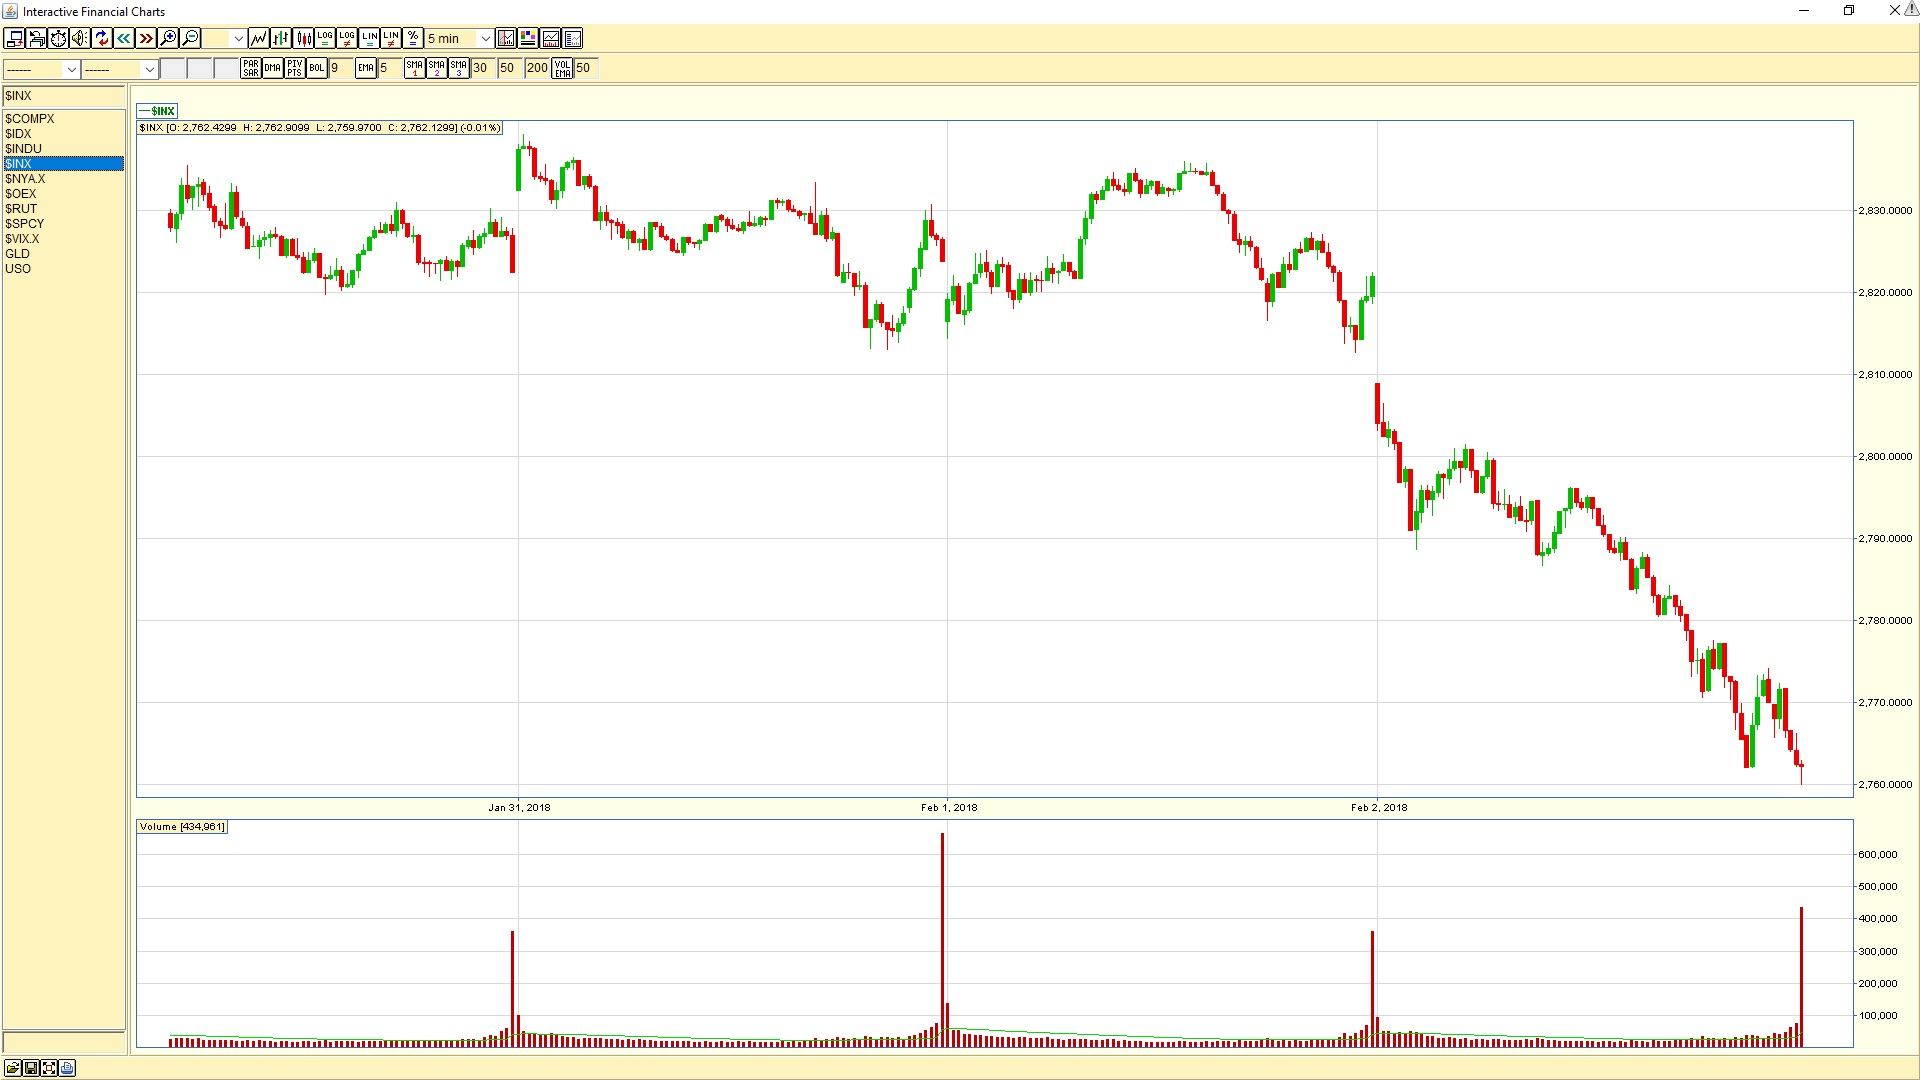 S&P 500 5-minute chart